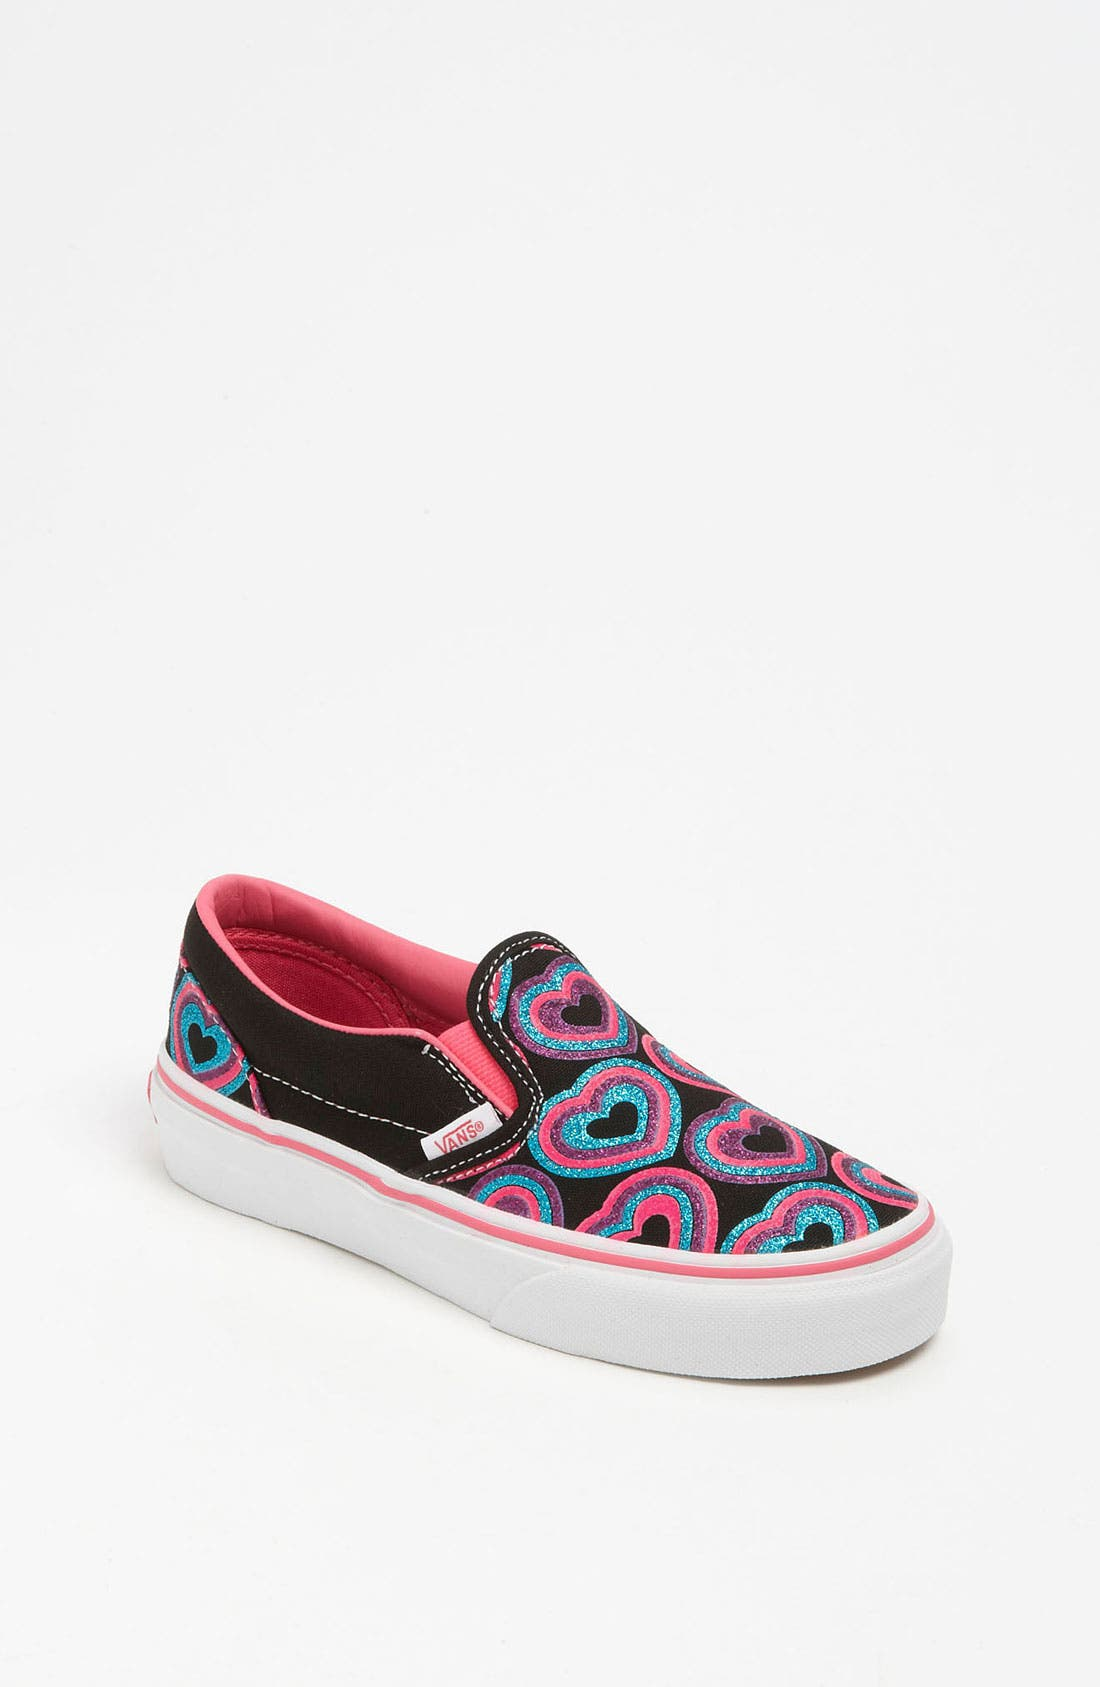 Main Image - Vans 'Classic - Glitter Hearts' Slip-On (Toddler, Little Kid & Big Kid)